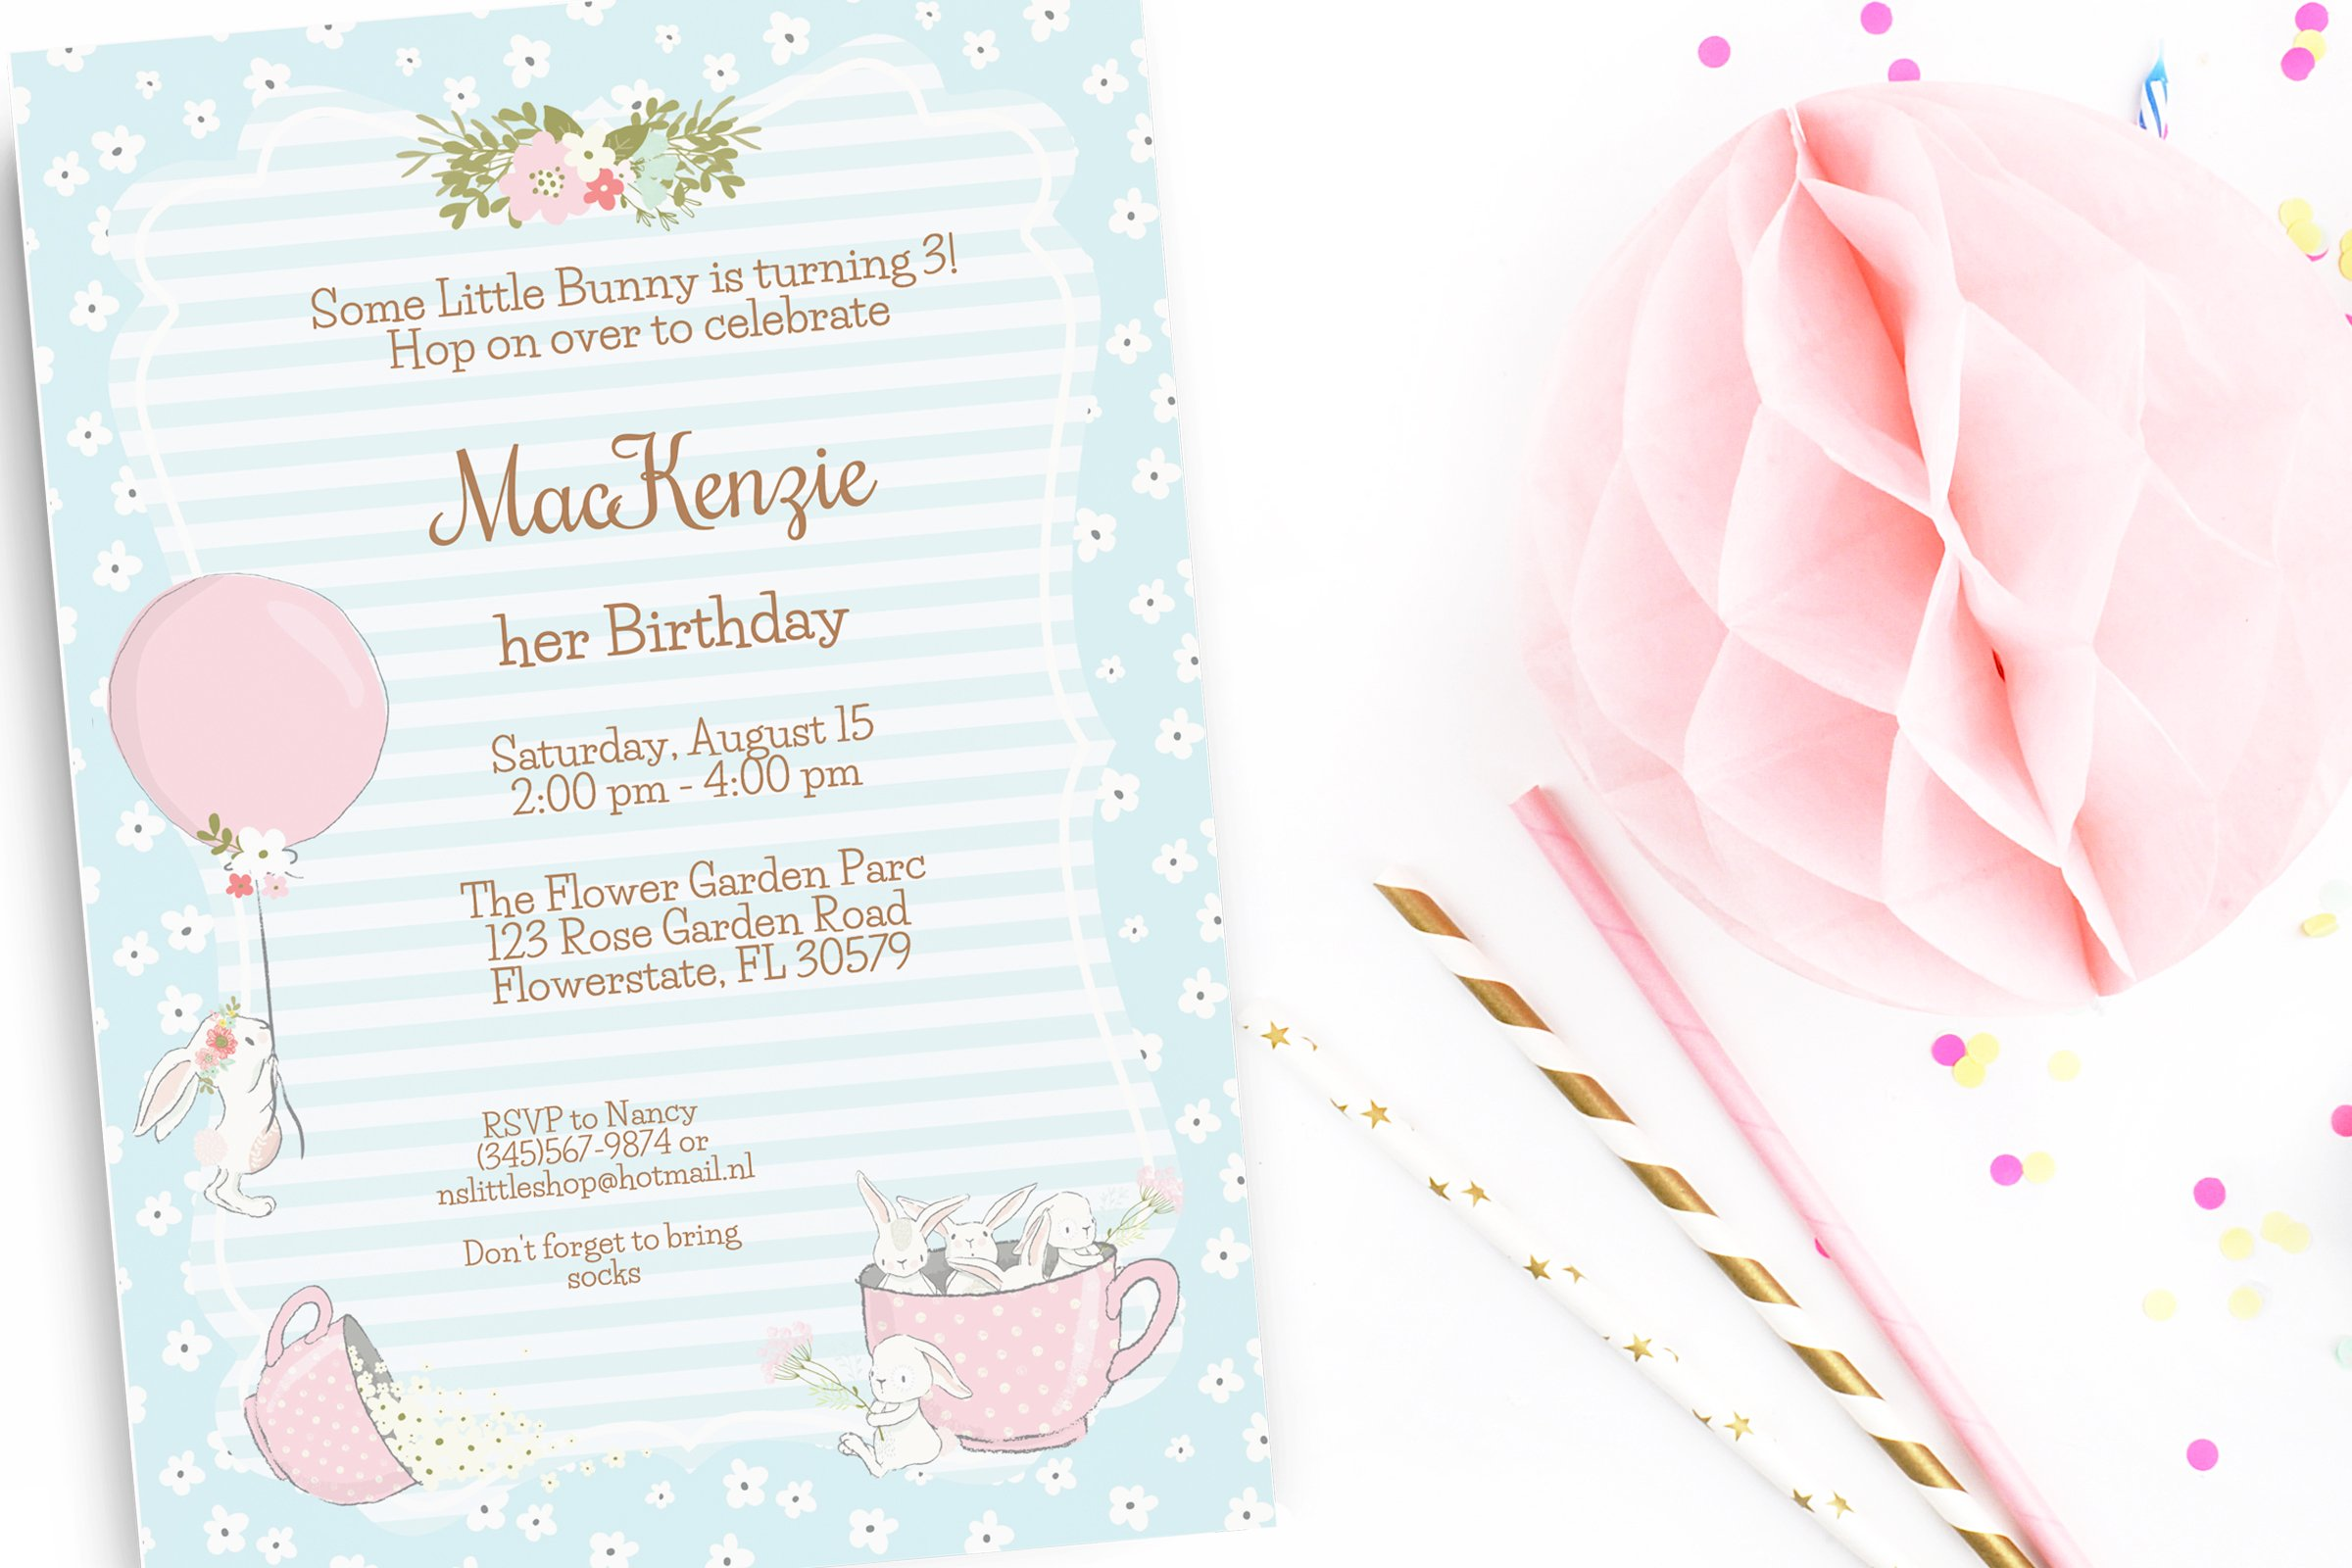 Bunny birthday party invitation ~ Invitation Templates ...